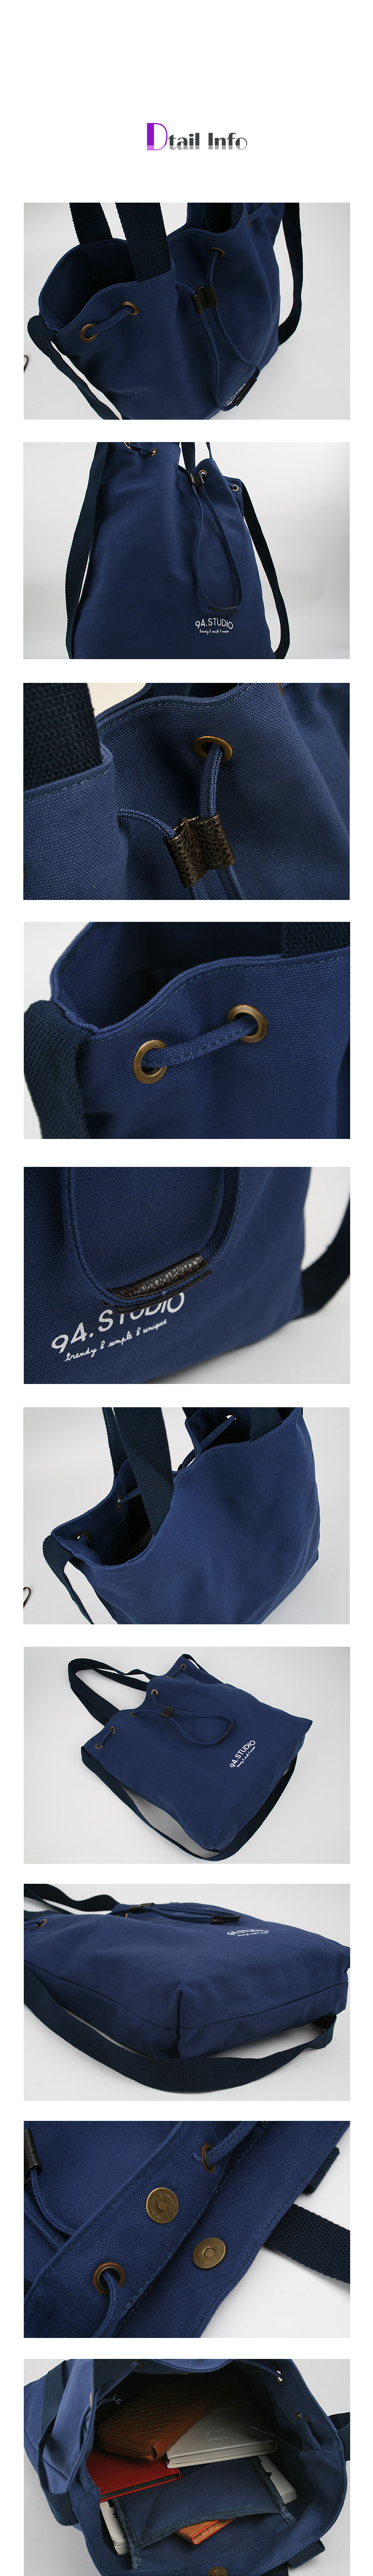 Shoulder&tote bag no.K88505view-1